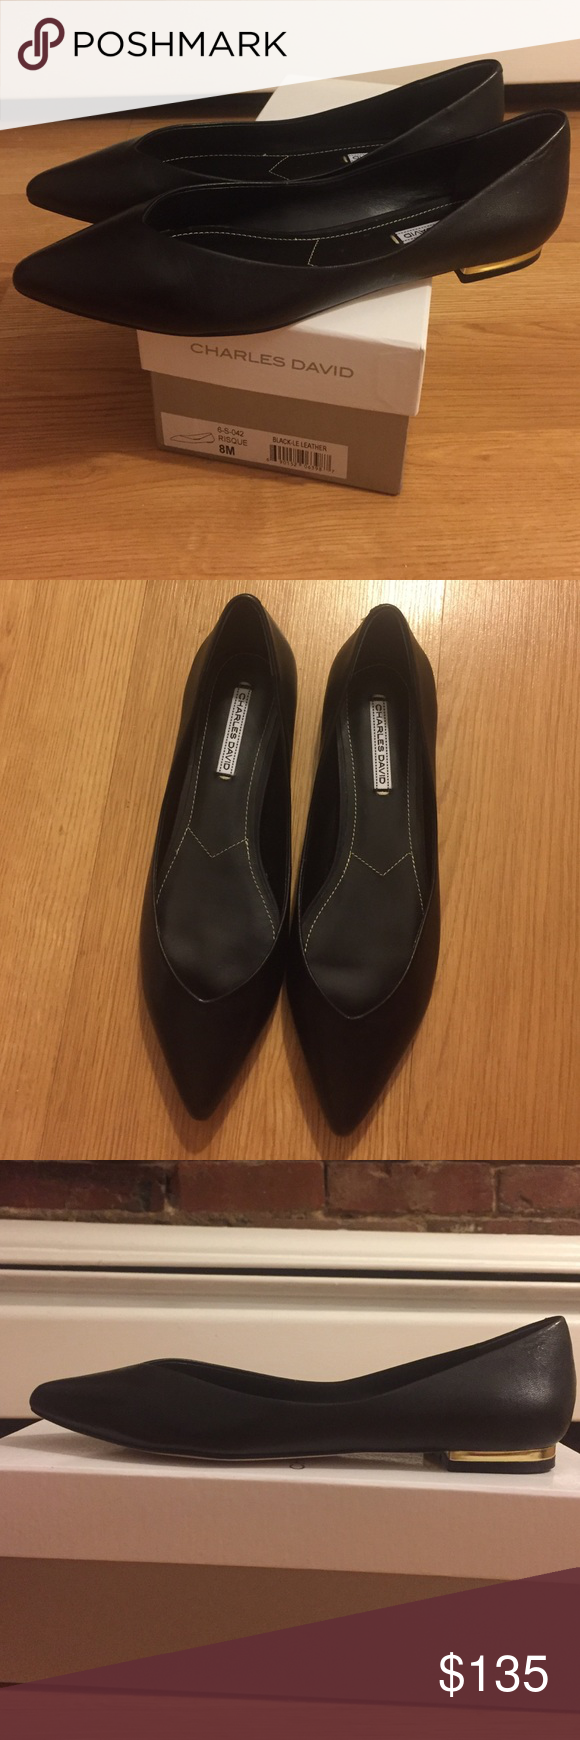 NWT Black Leather Flats Brand new in the box, black leather pointed toe 'Risque' flats from Charles by Charles David. Size US W8. Never been worn or used, but super cute with gold trim on the heel. Charles David Shoes Flats & Loafers